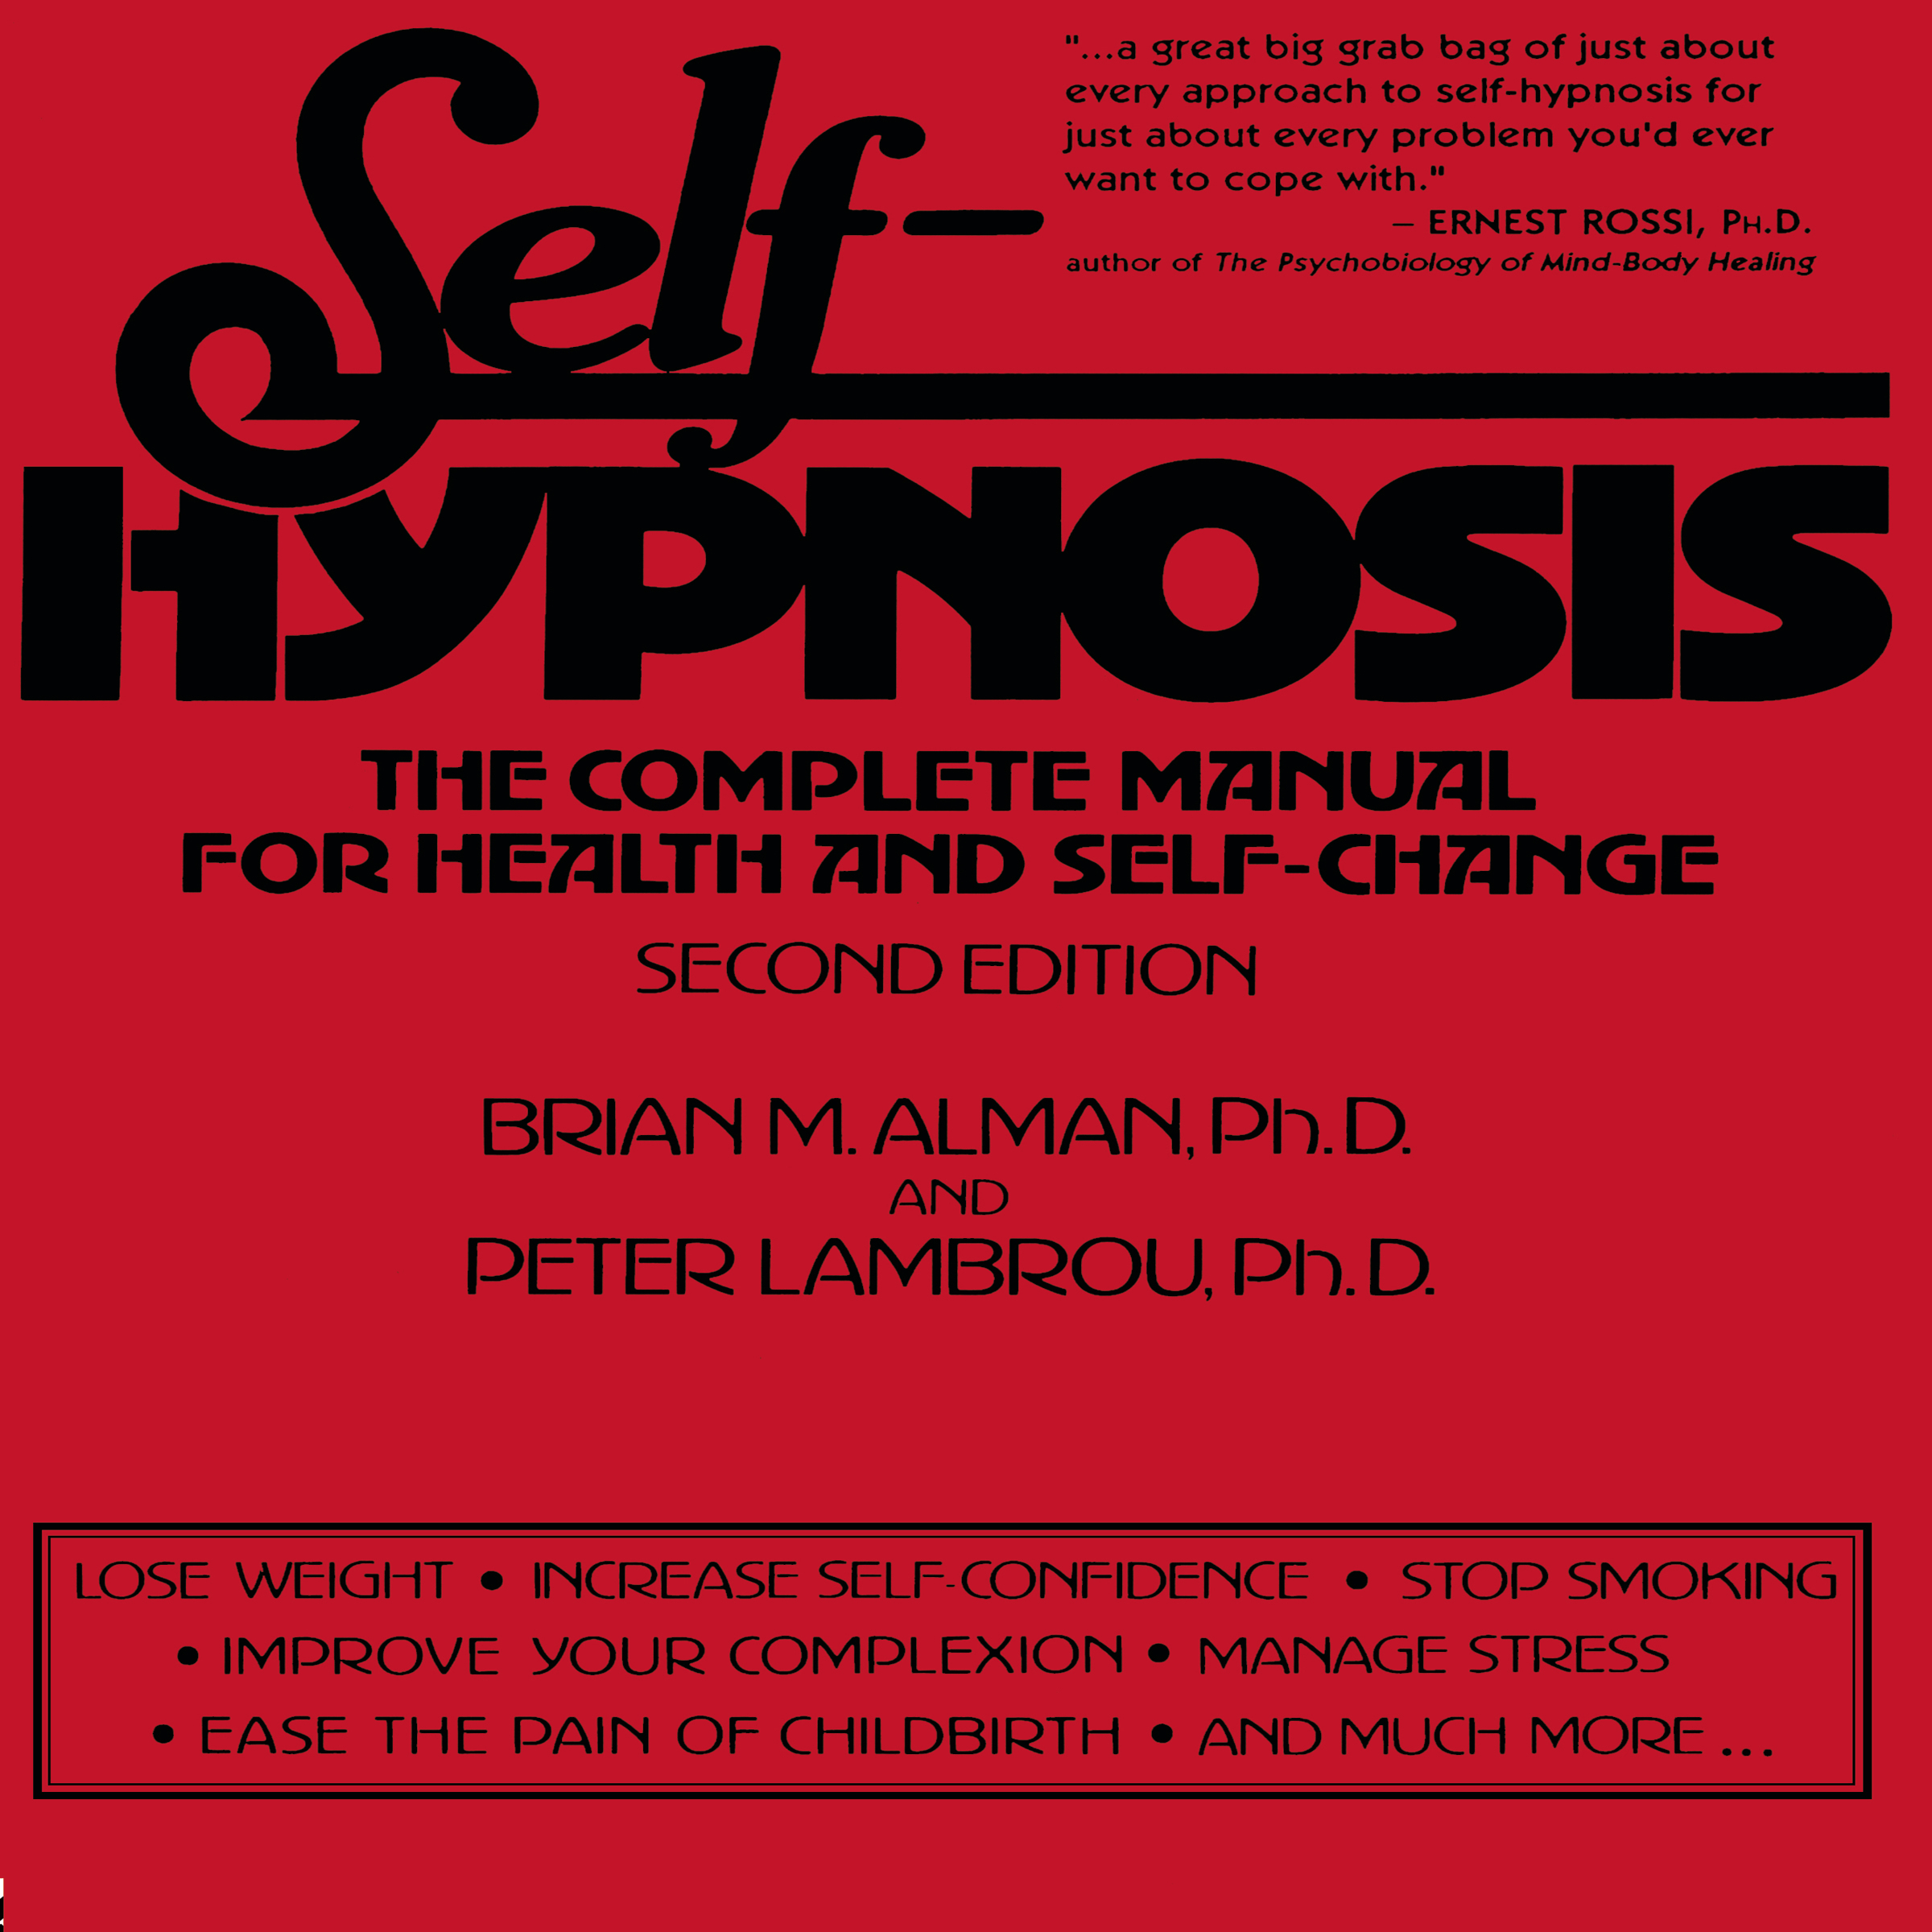 Printable Self-Hypnosis: The Complete Manual for Health and Self-Change Second Edition Audiobook Cover Art